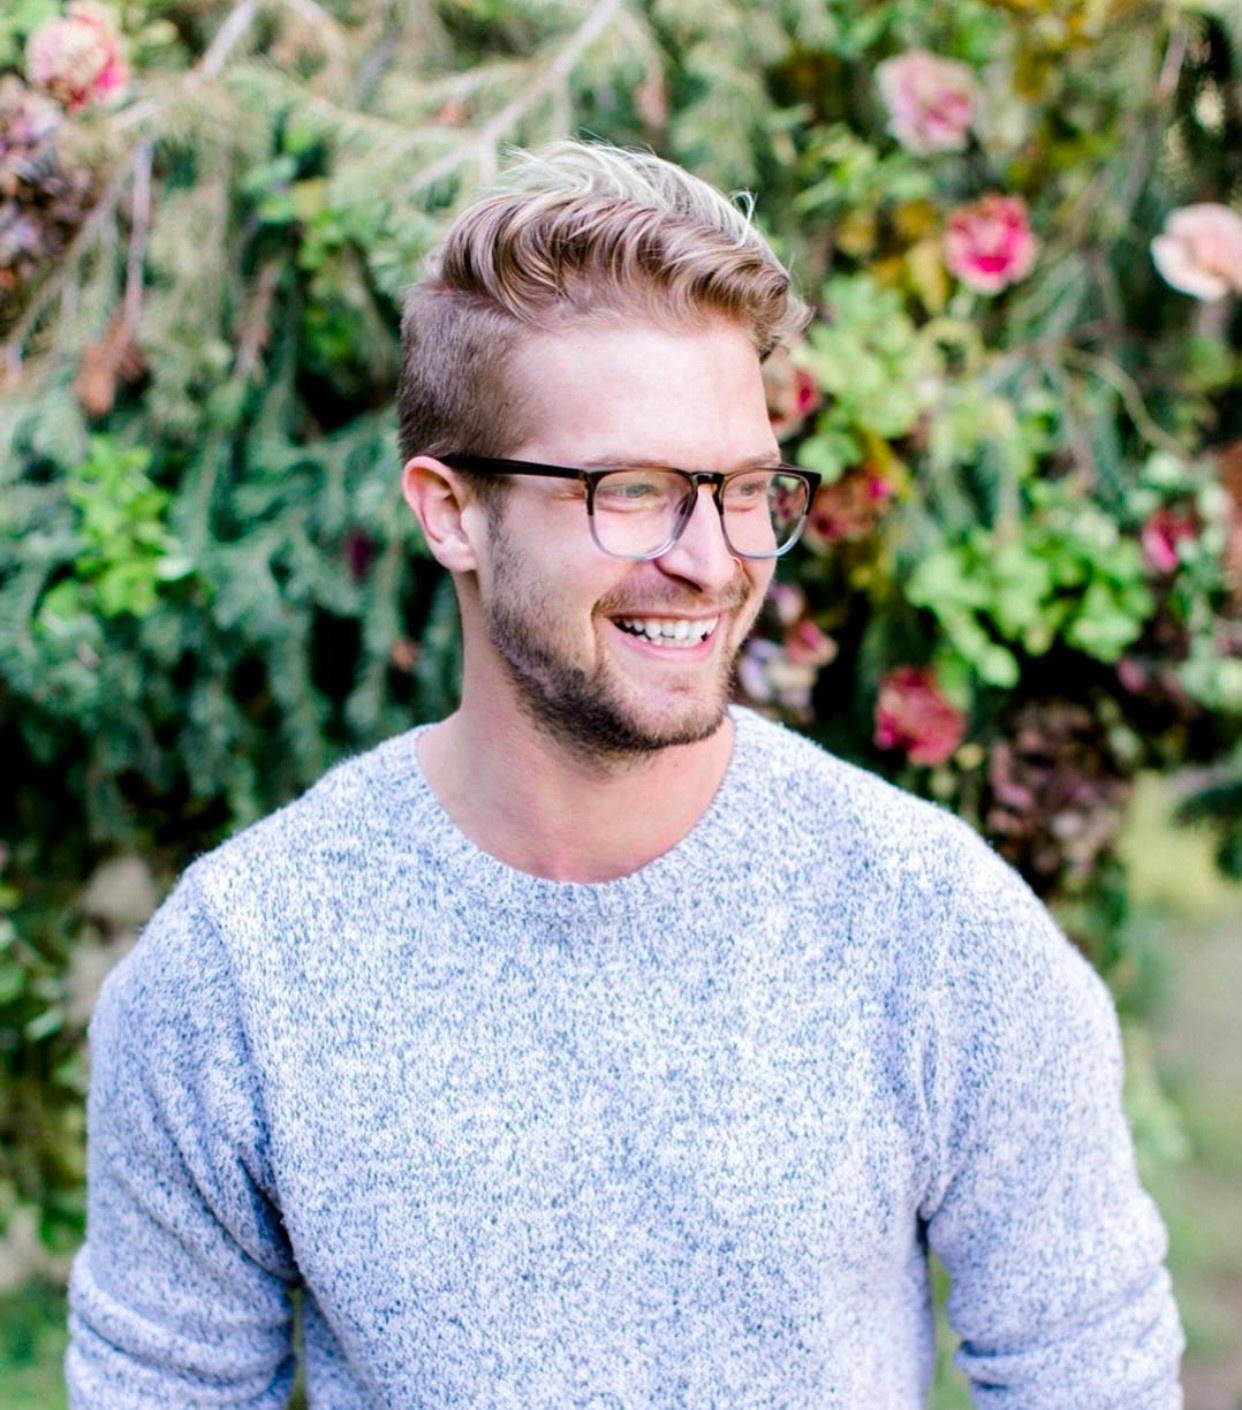 Man smiling wearing gray top and glasses Viva La Flora Live Podcast